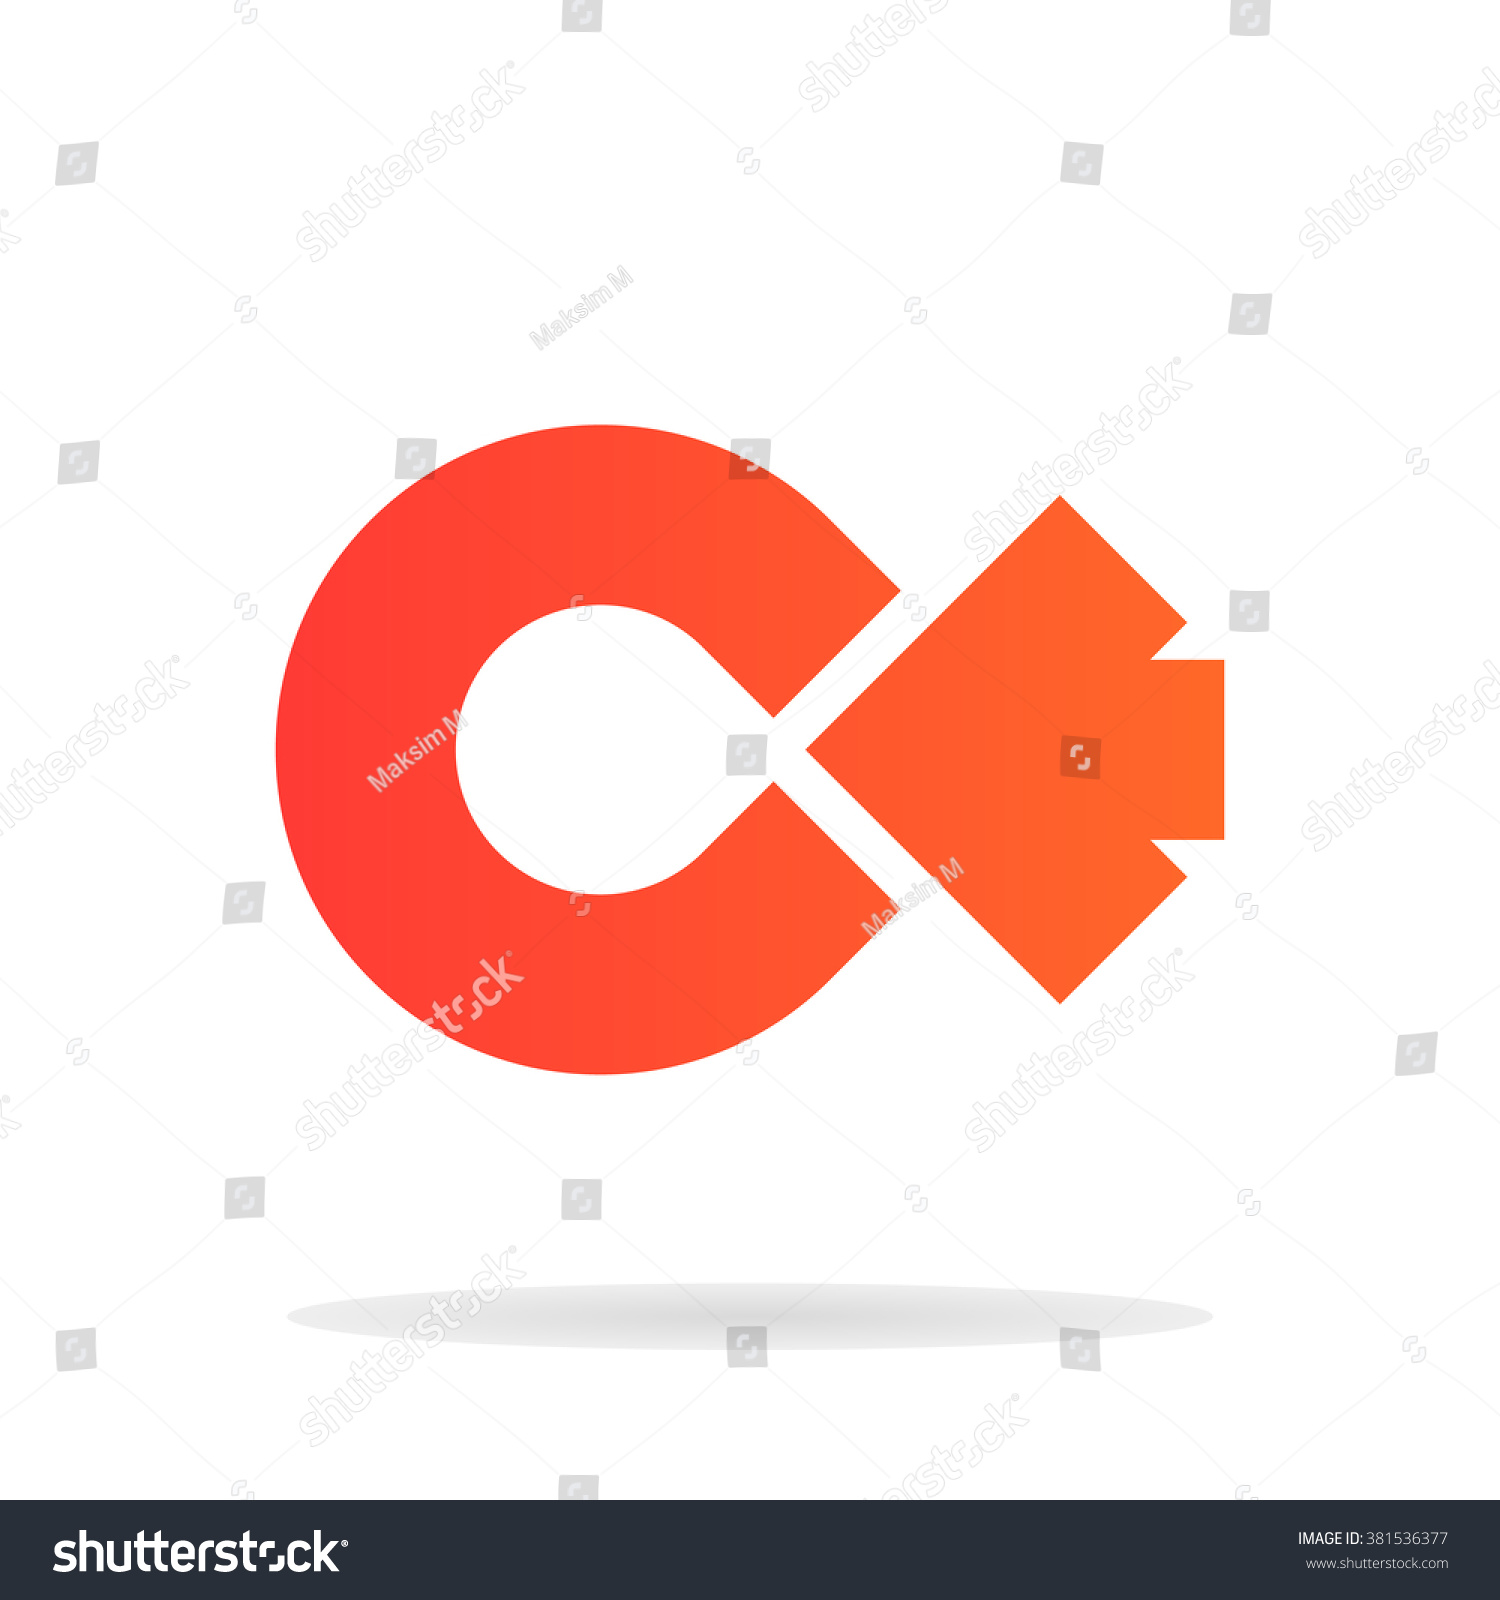 abstract letter c arrow logo templateのイラスト素材 381536377